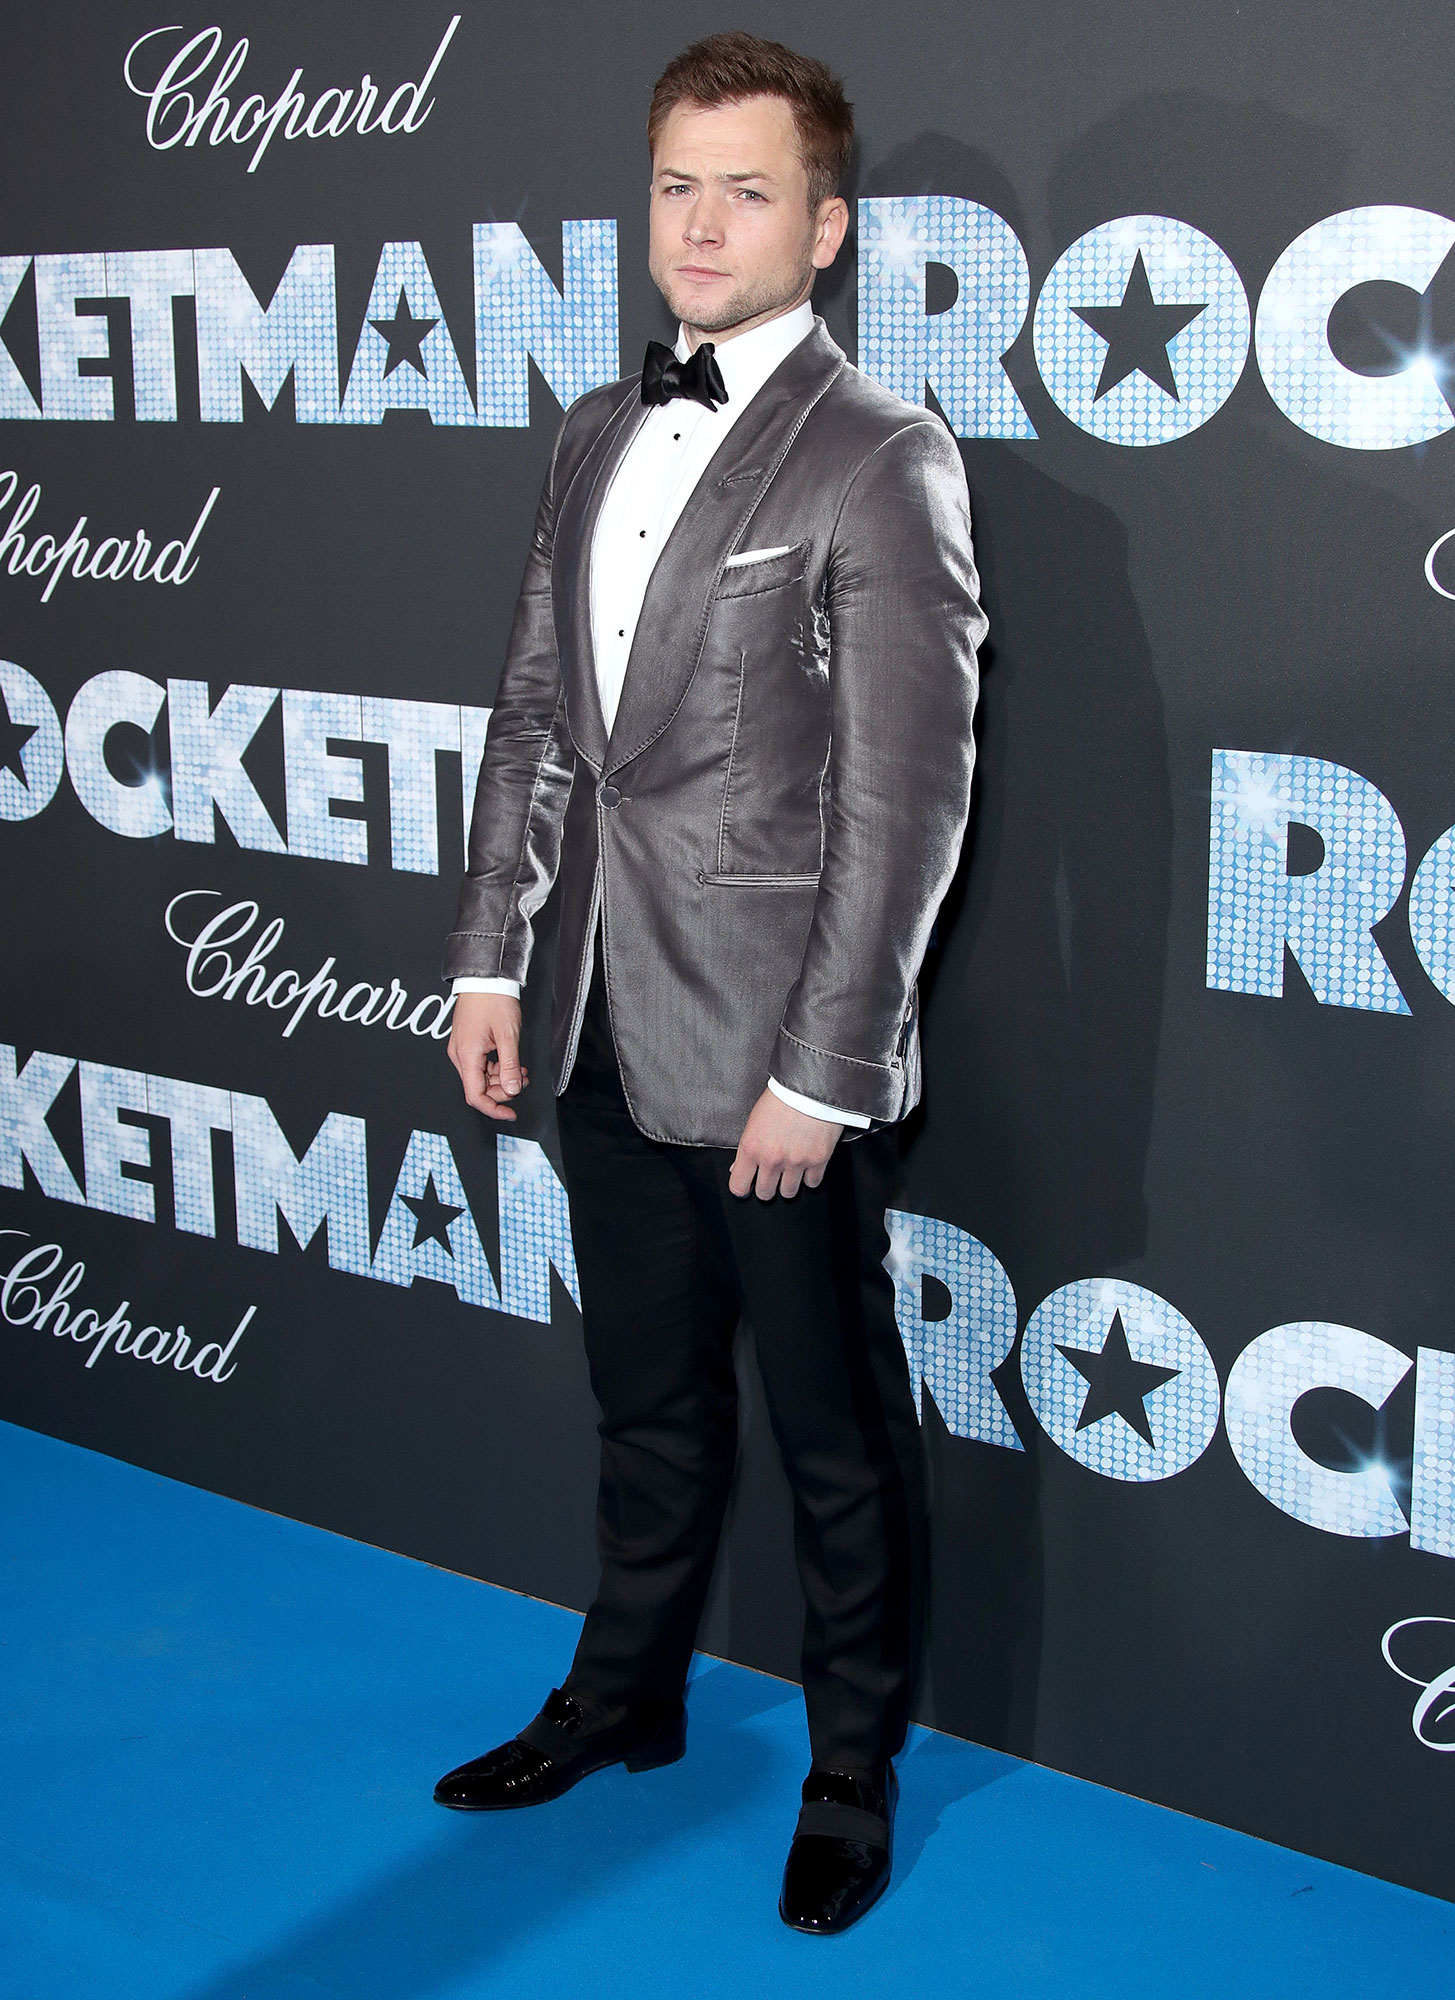 Taron Egerton Cannes Film Festival 2019 Most Stylish Guys Red Carpet - Paying homage to Elton John, perhaps? The Rocketman star shined on the blue carpet in a silver jacket on Thursday, May 16.